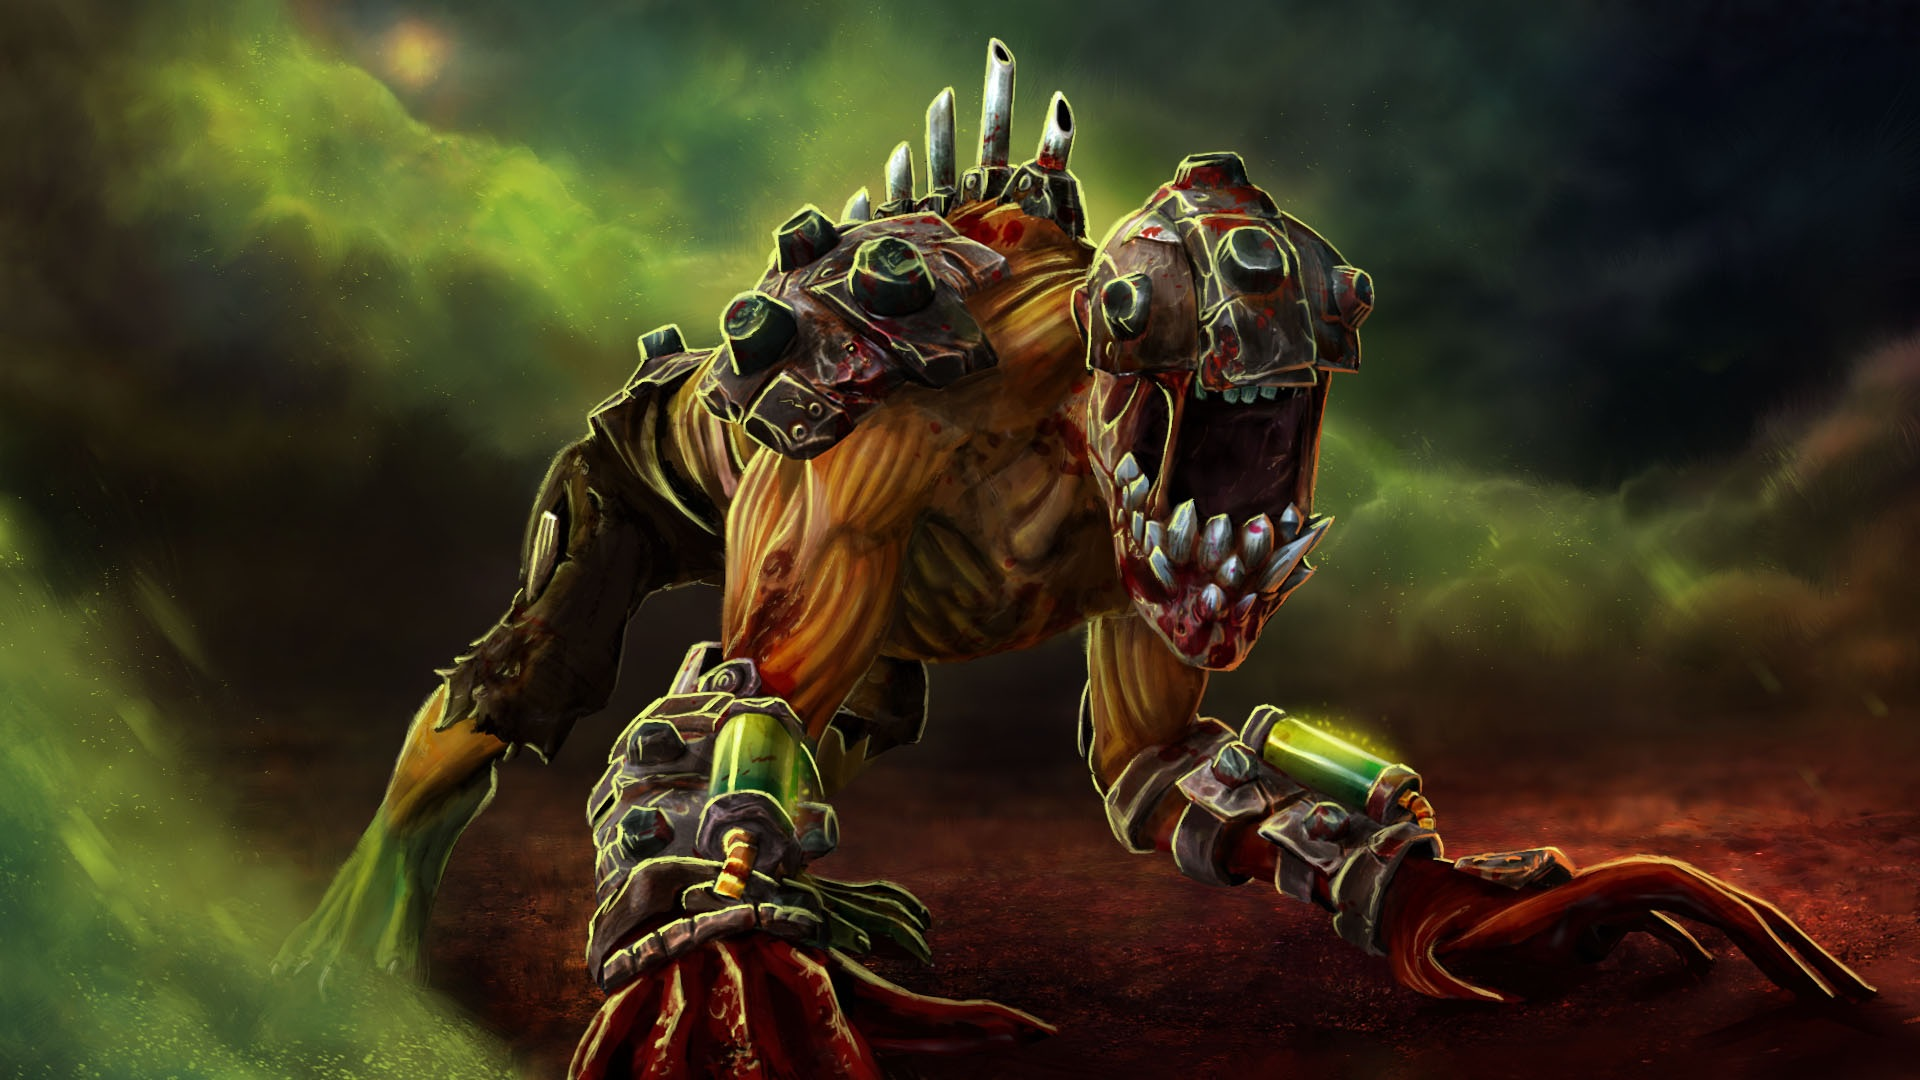 Lifestealer, N'aix Dota 2